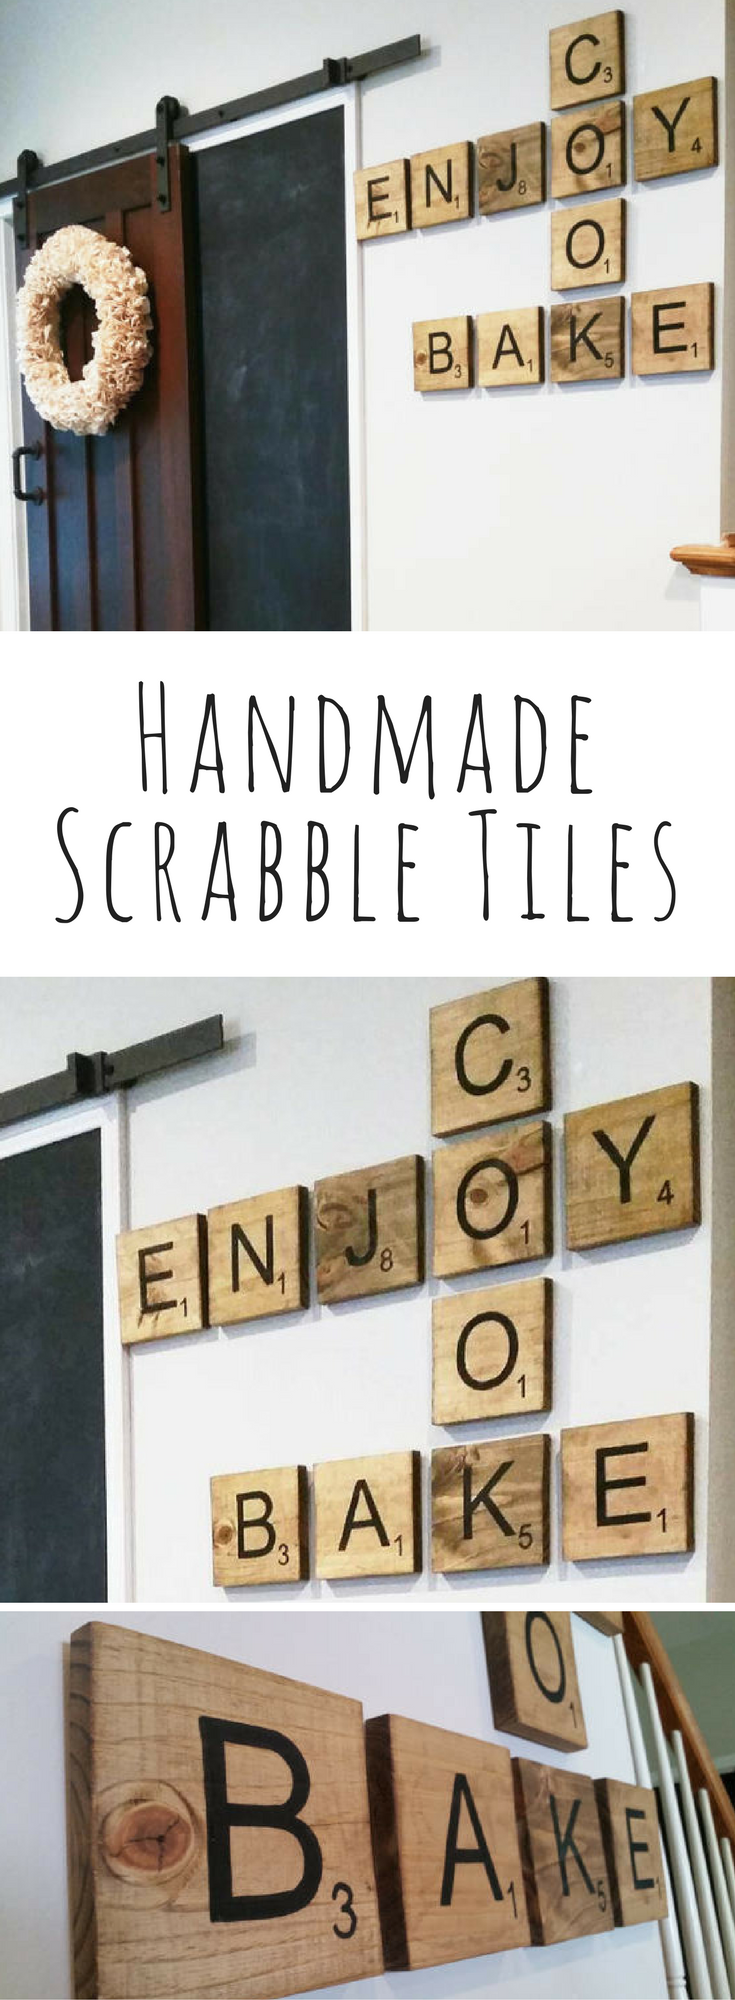 Handmade scrabble tiles with point value board game wall art